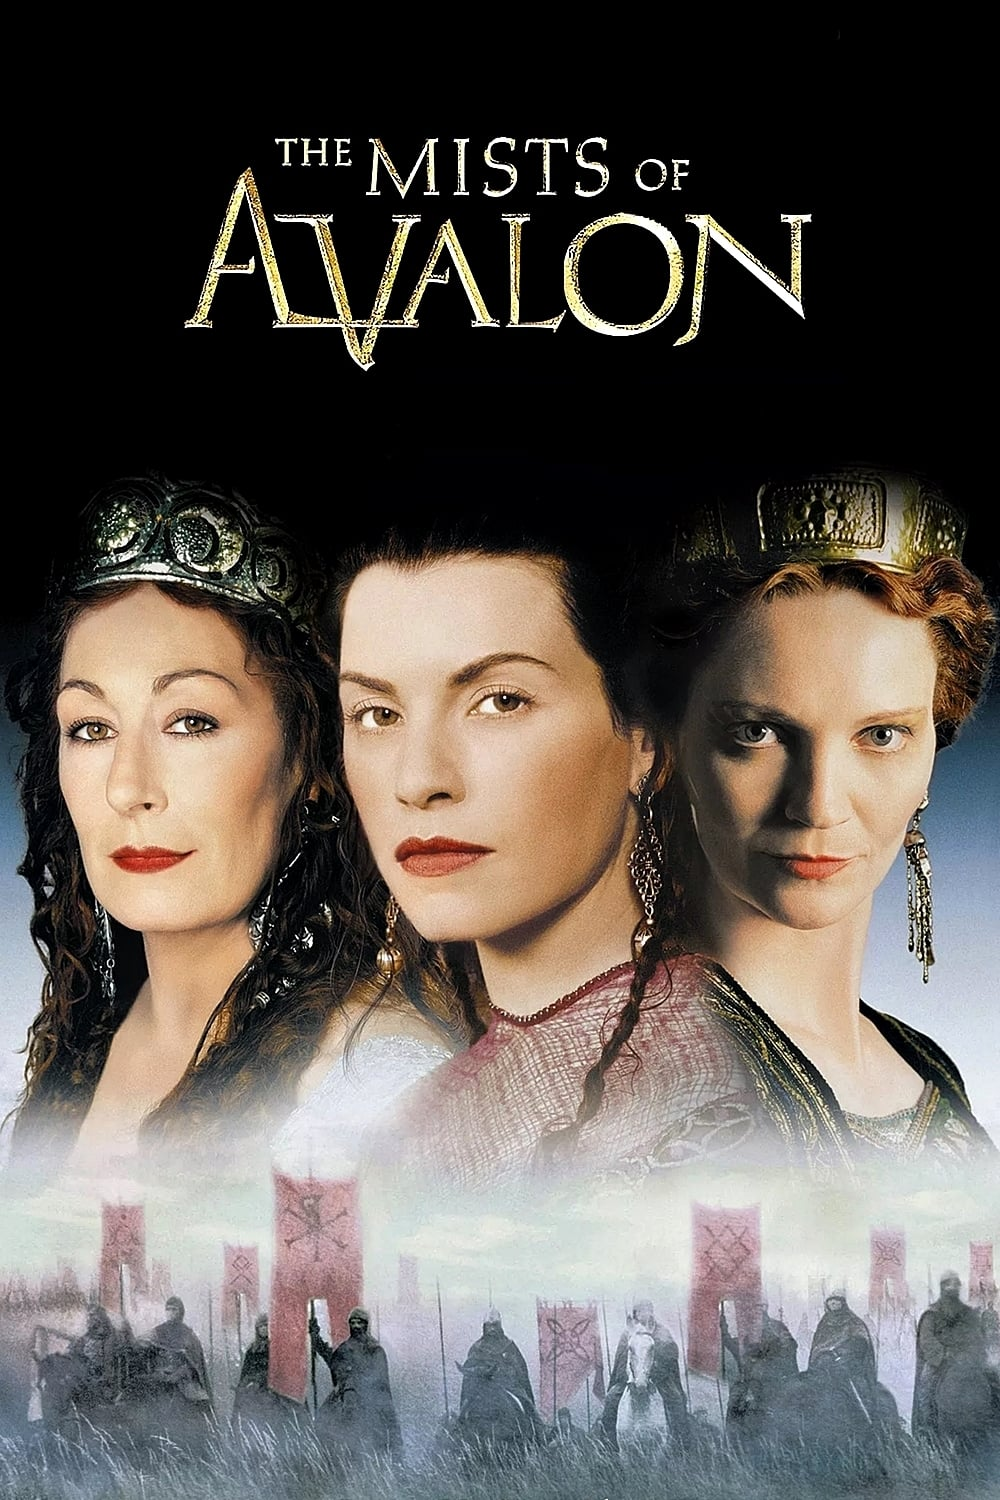 The Mists of Avalon TV Shows About Sword Fight